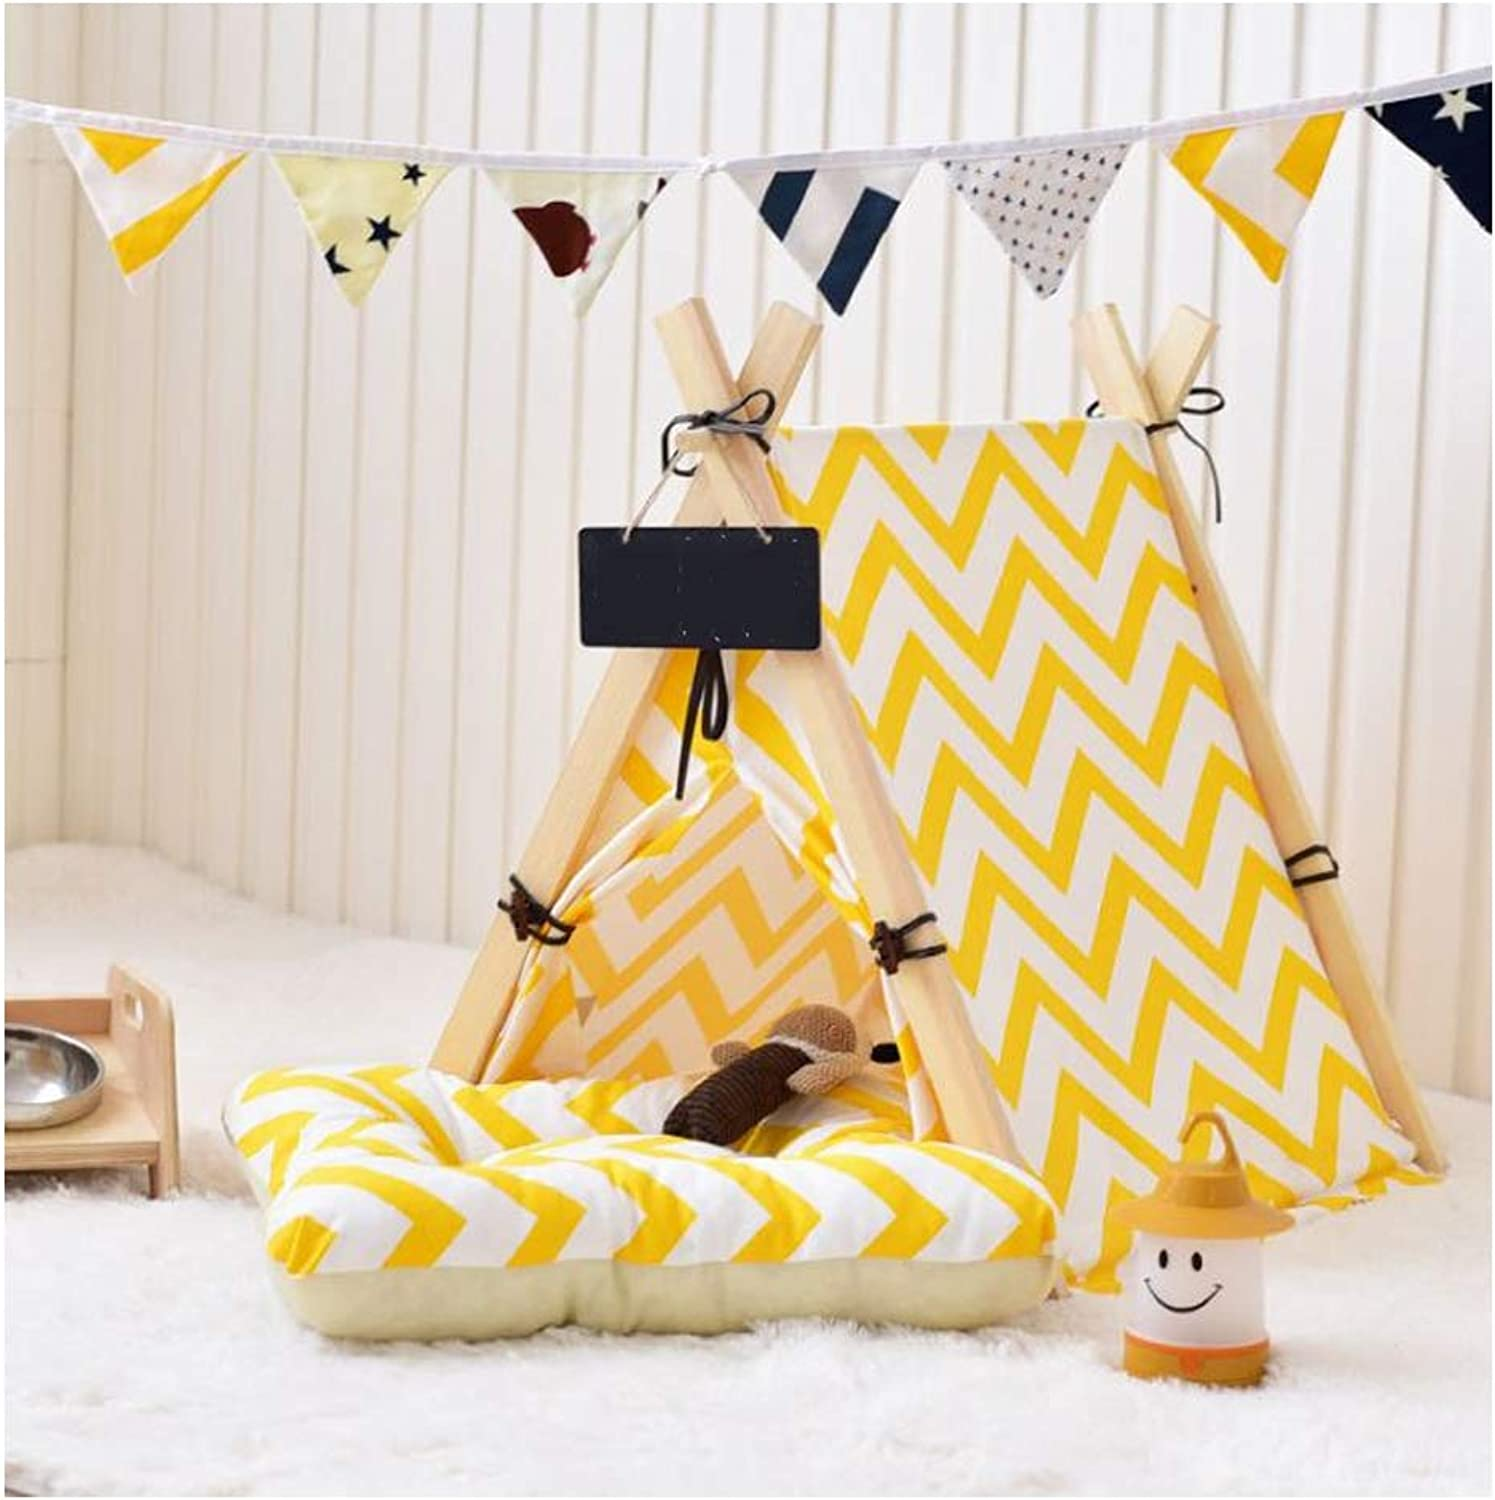 GDDYQ Pet Bed, Pet Indoor Game Tent Suitable for Cats and Dogs to Play and Rest Easy to Install, There are Many Options,Tent,S